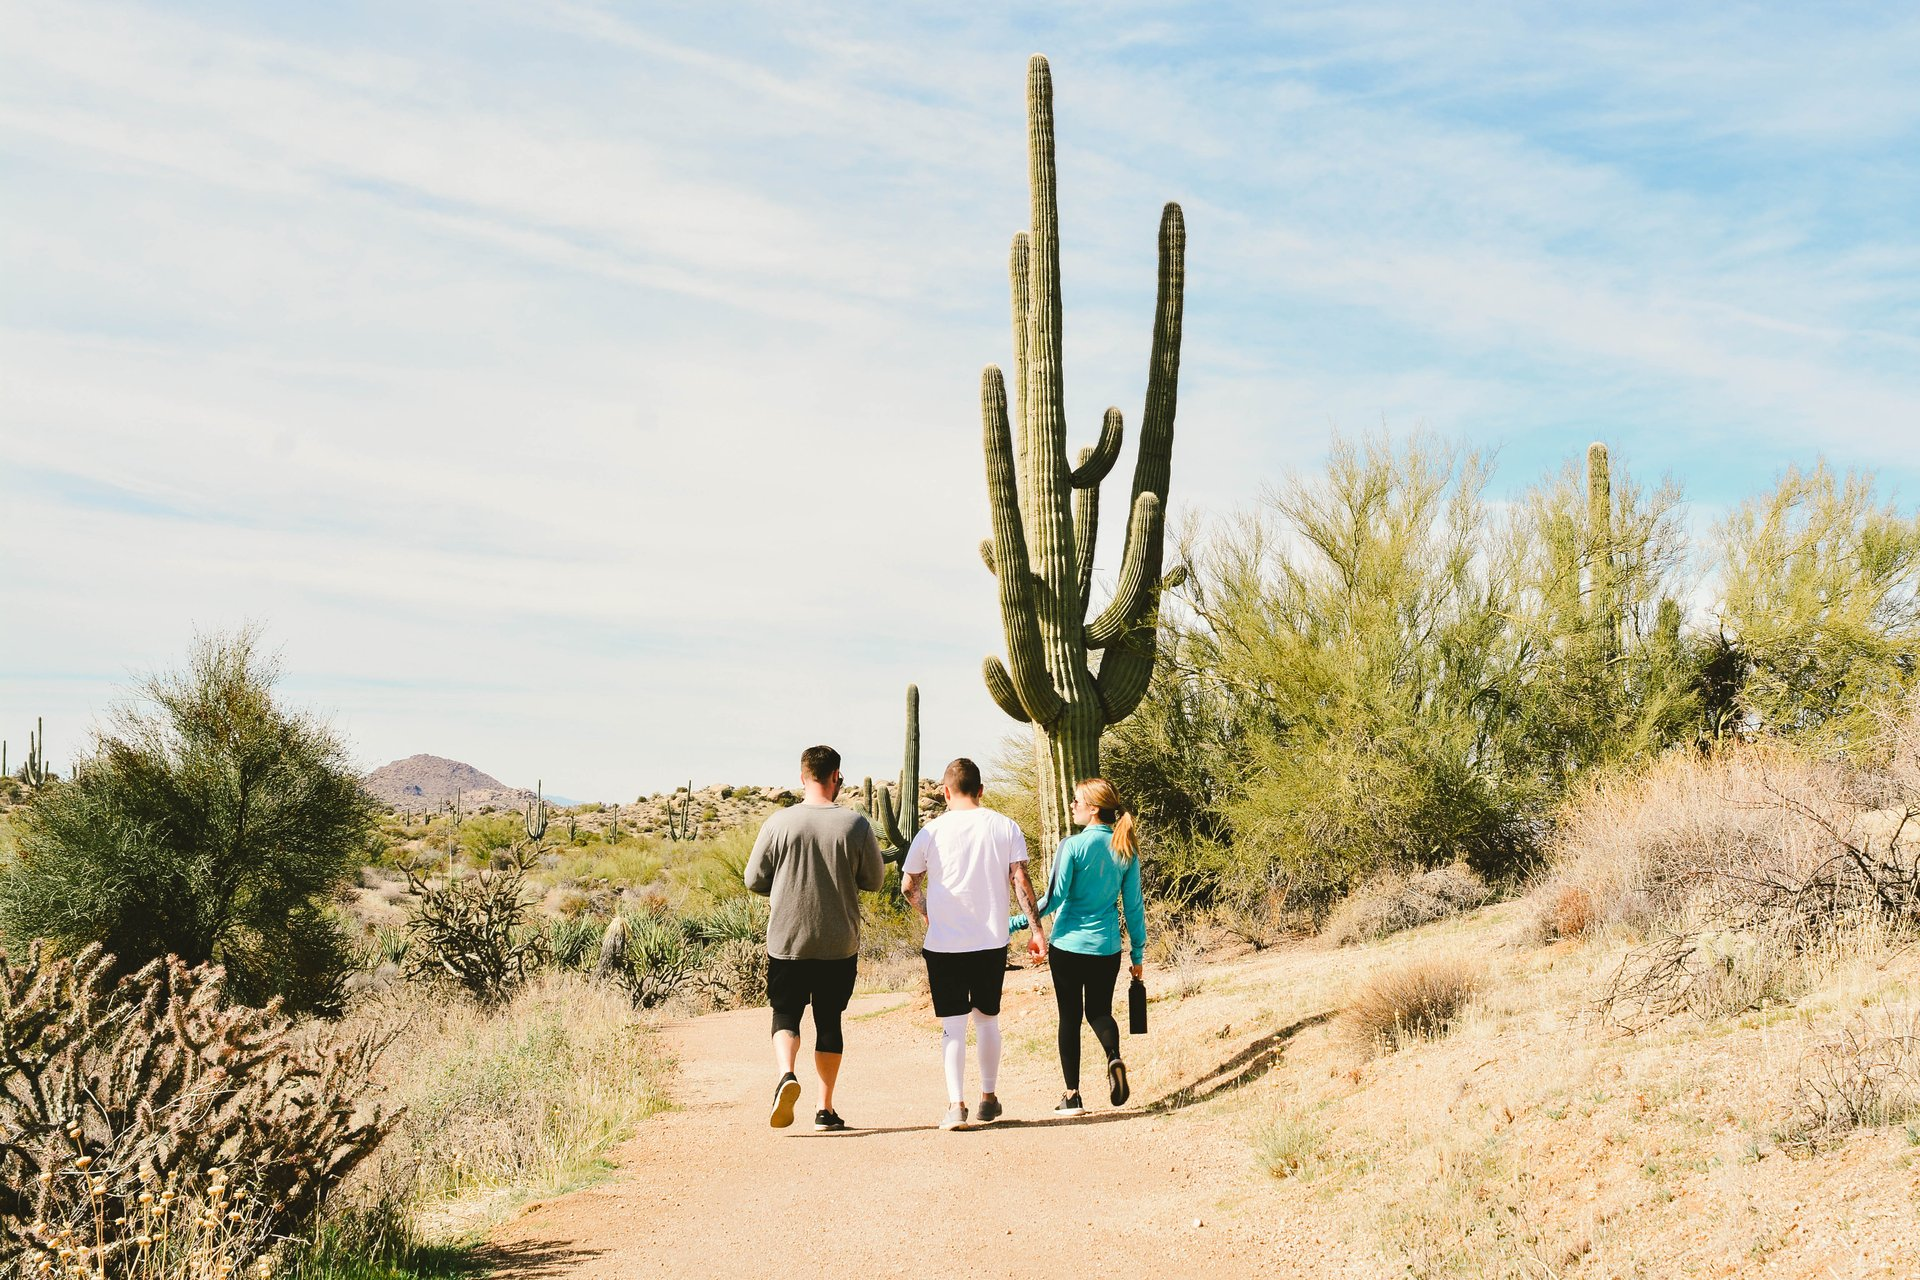 Celebrating the McDowell Sonoran Preserve